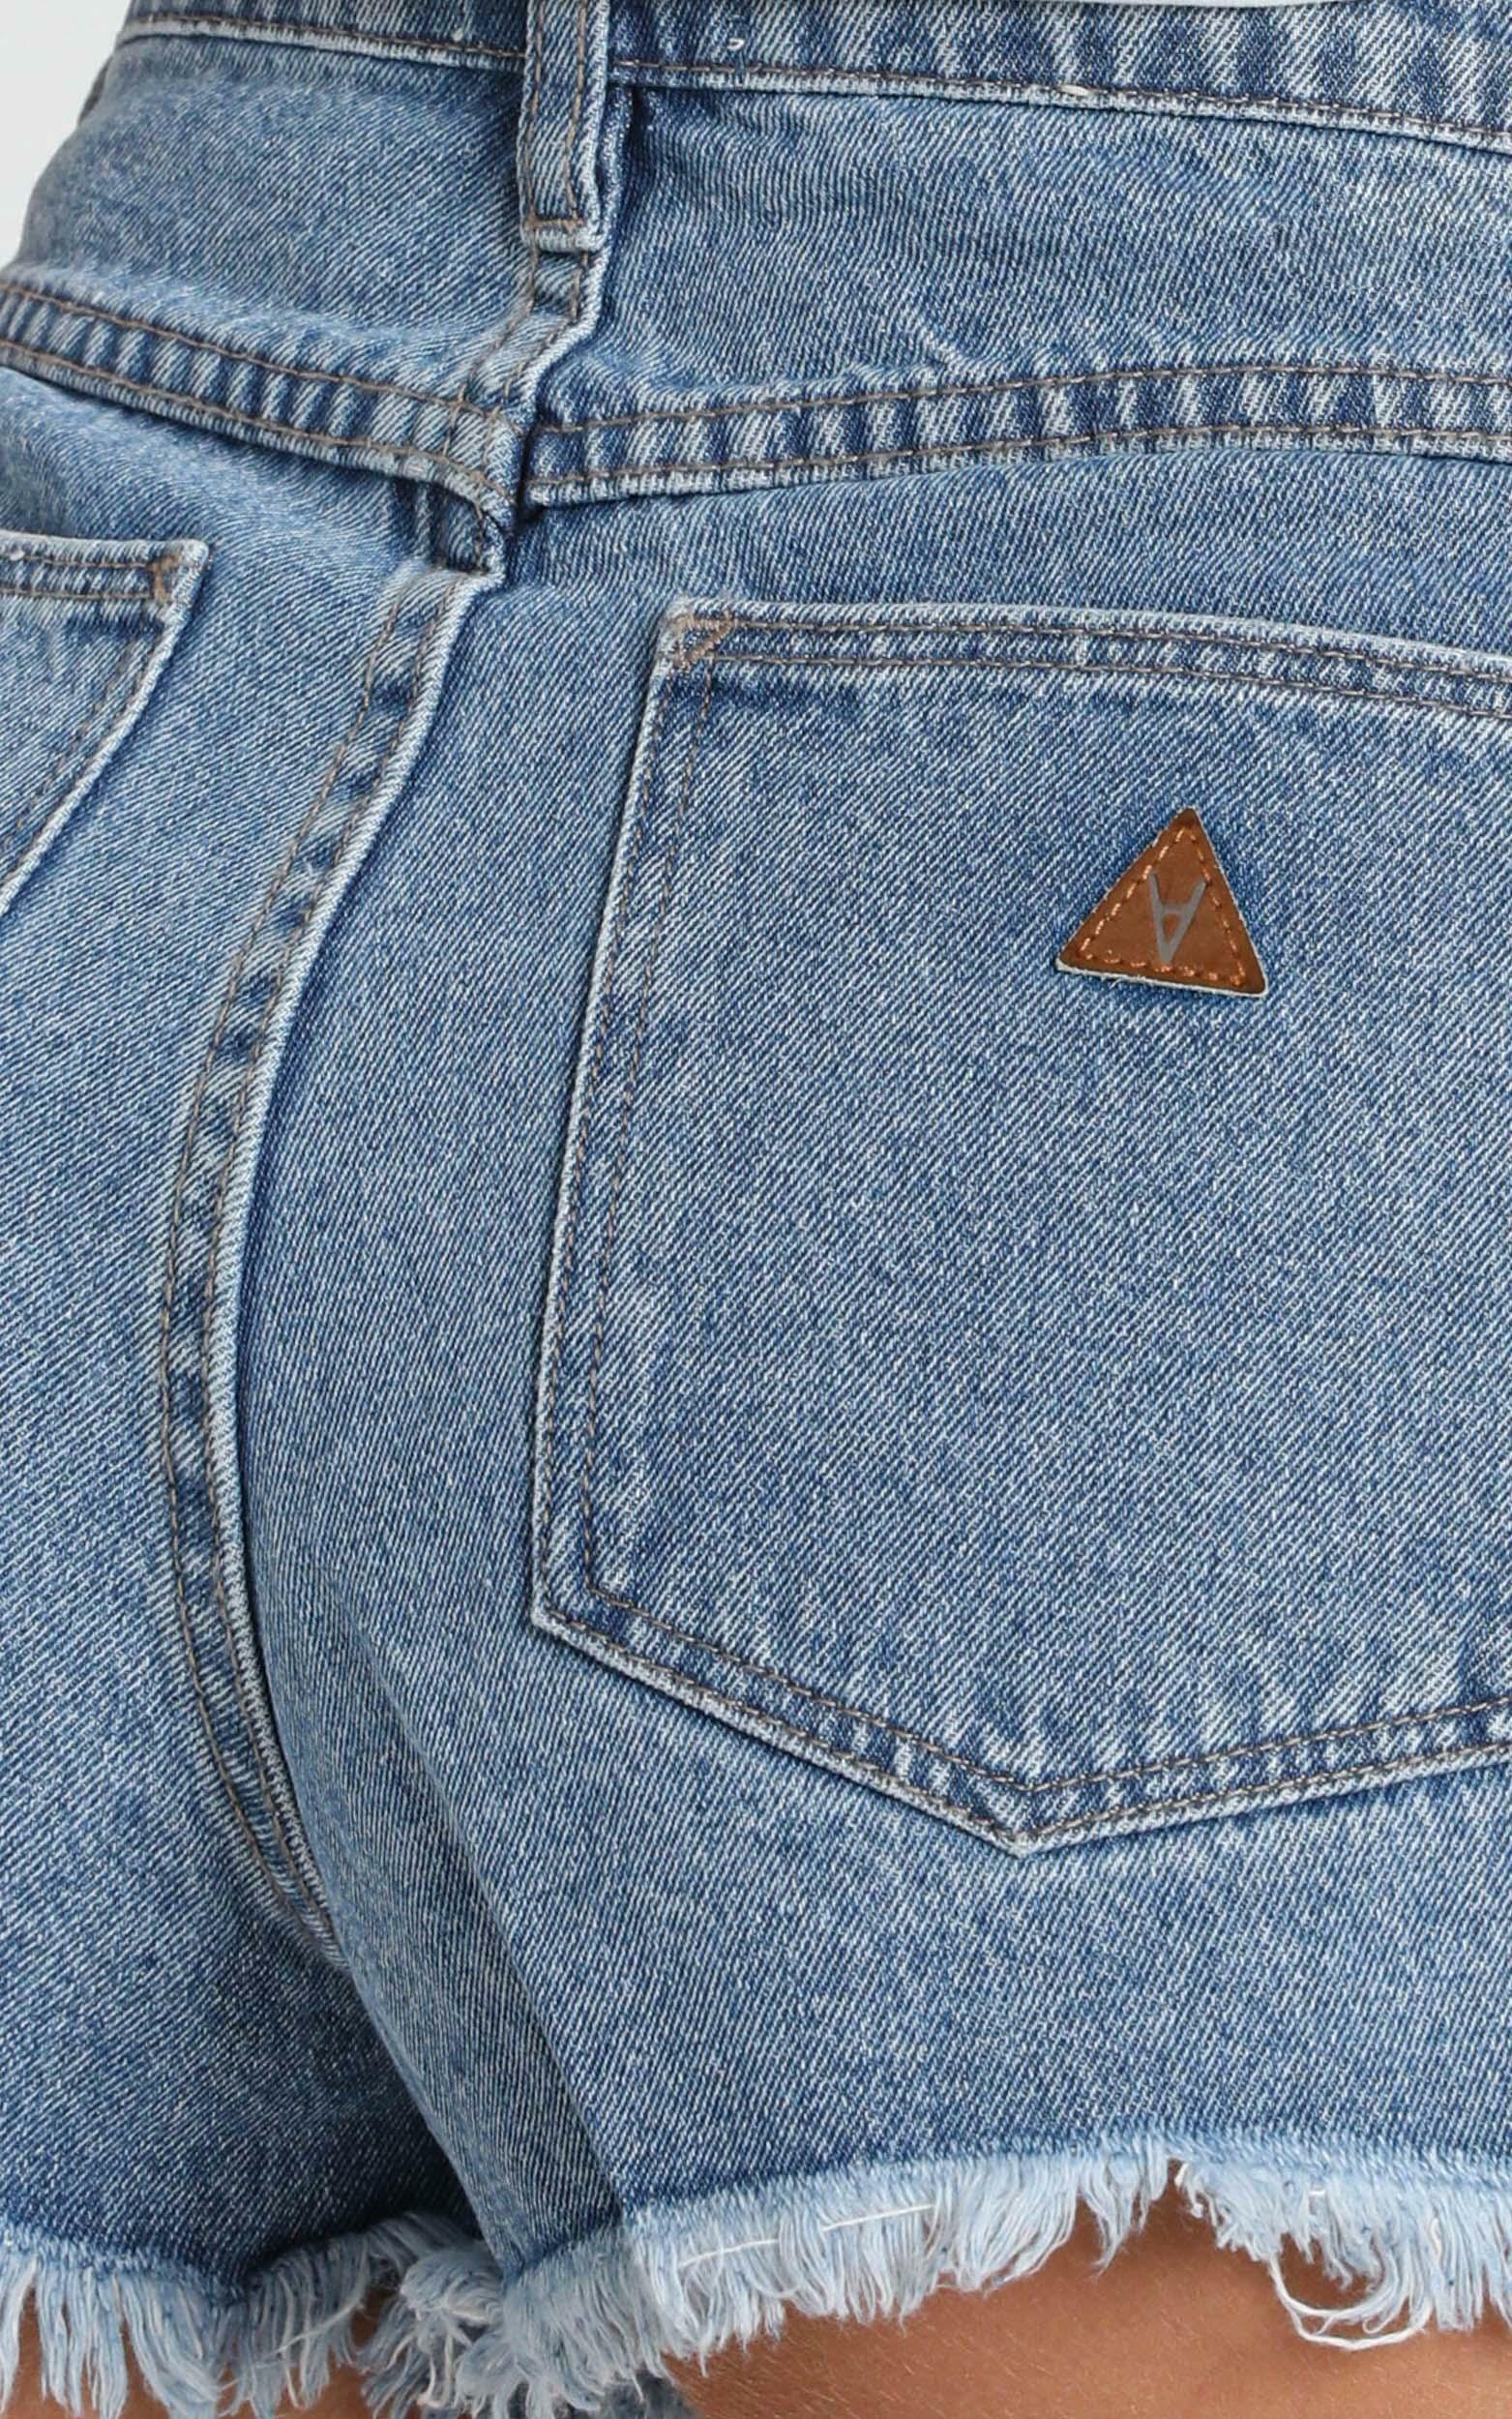 Abrand - A High Relaxed Denim Shorts in salty blue - 6 (XS), BLU1, hi-res image number null